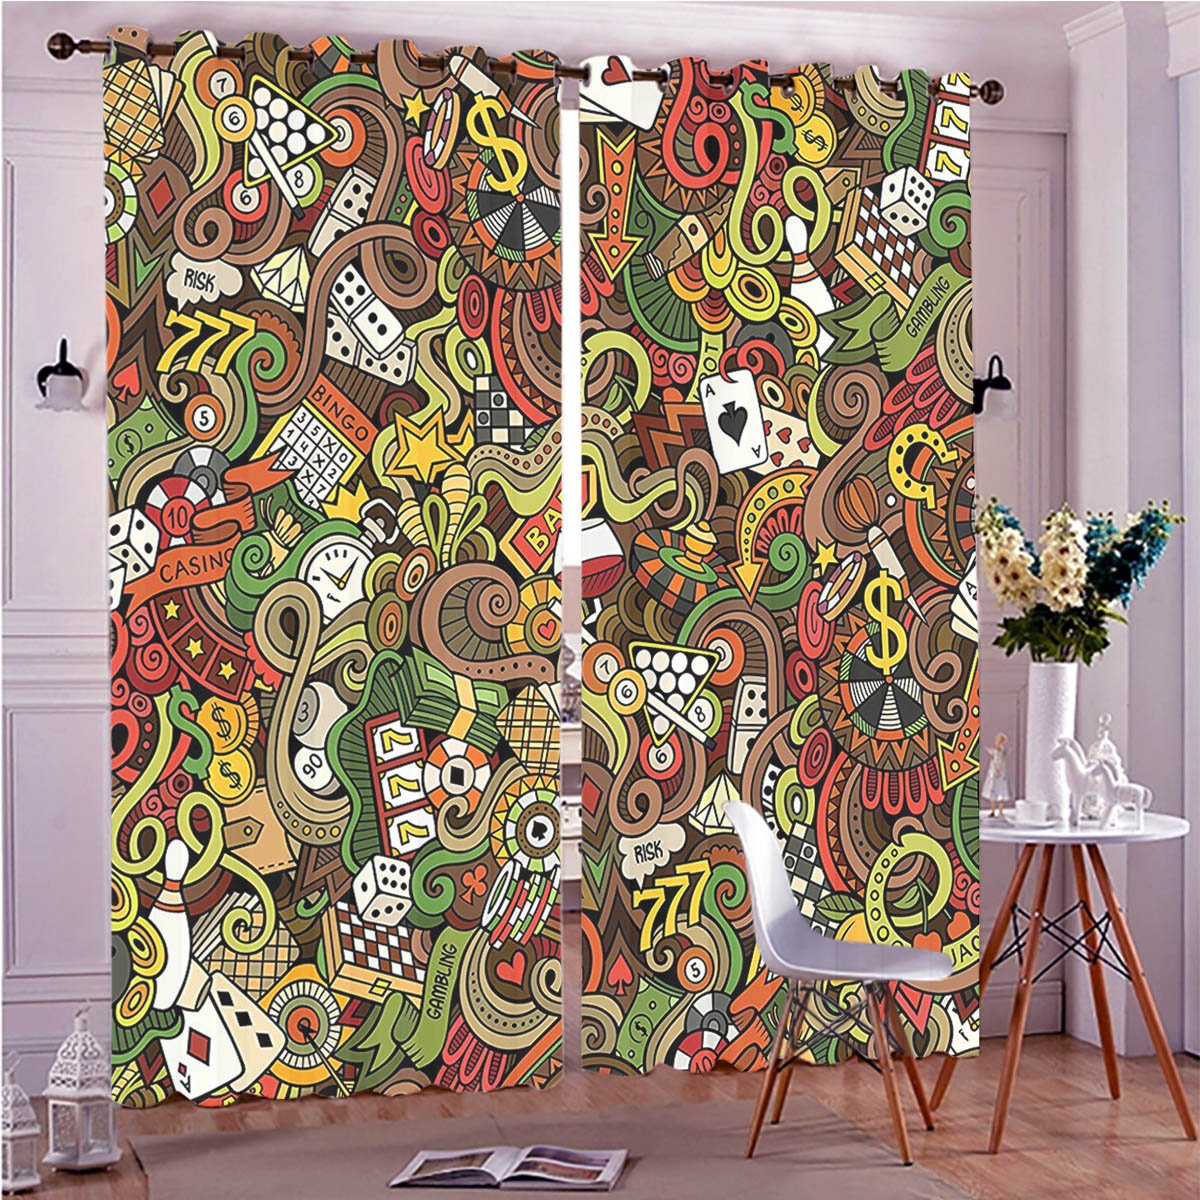 Two Panel Set Window Curtain Casino Decorations Doodles Style Art Bingo Excitement Checkers King Tambourine Vegas Polyester Window Treatments For Bedroom Diningroom Livingroom Dorm, 108'' Wx108 L by LcHzz2